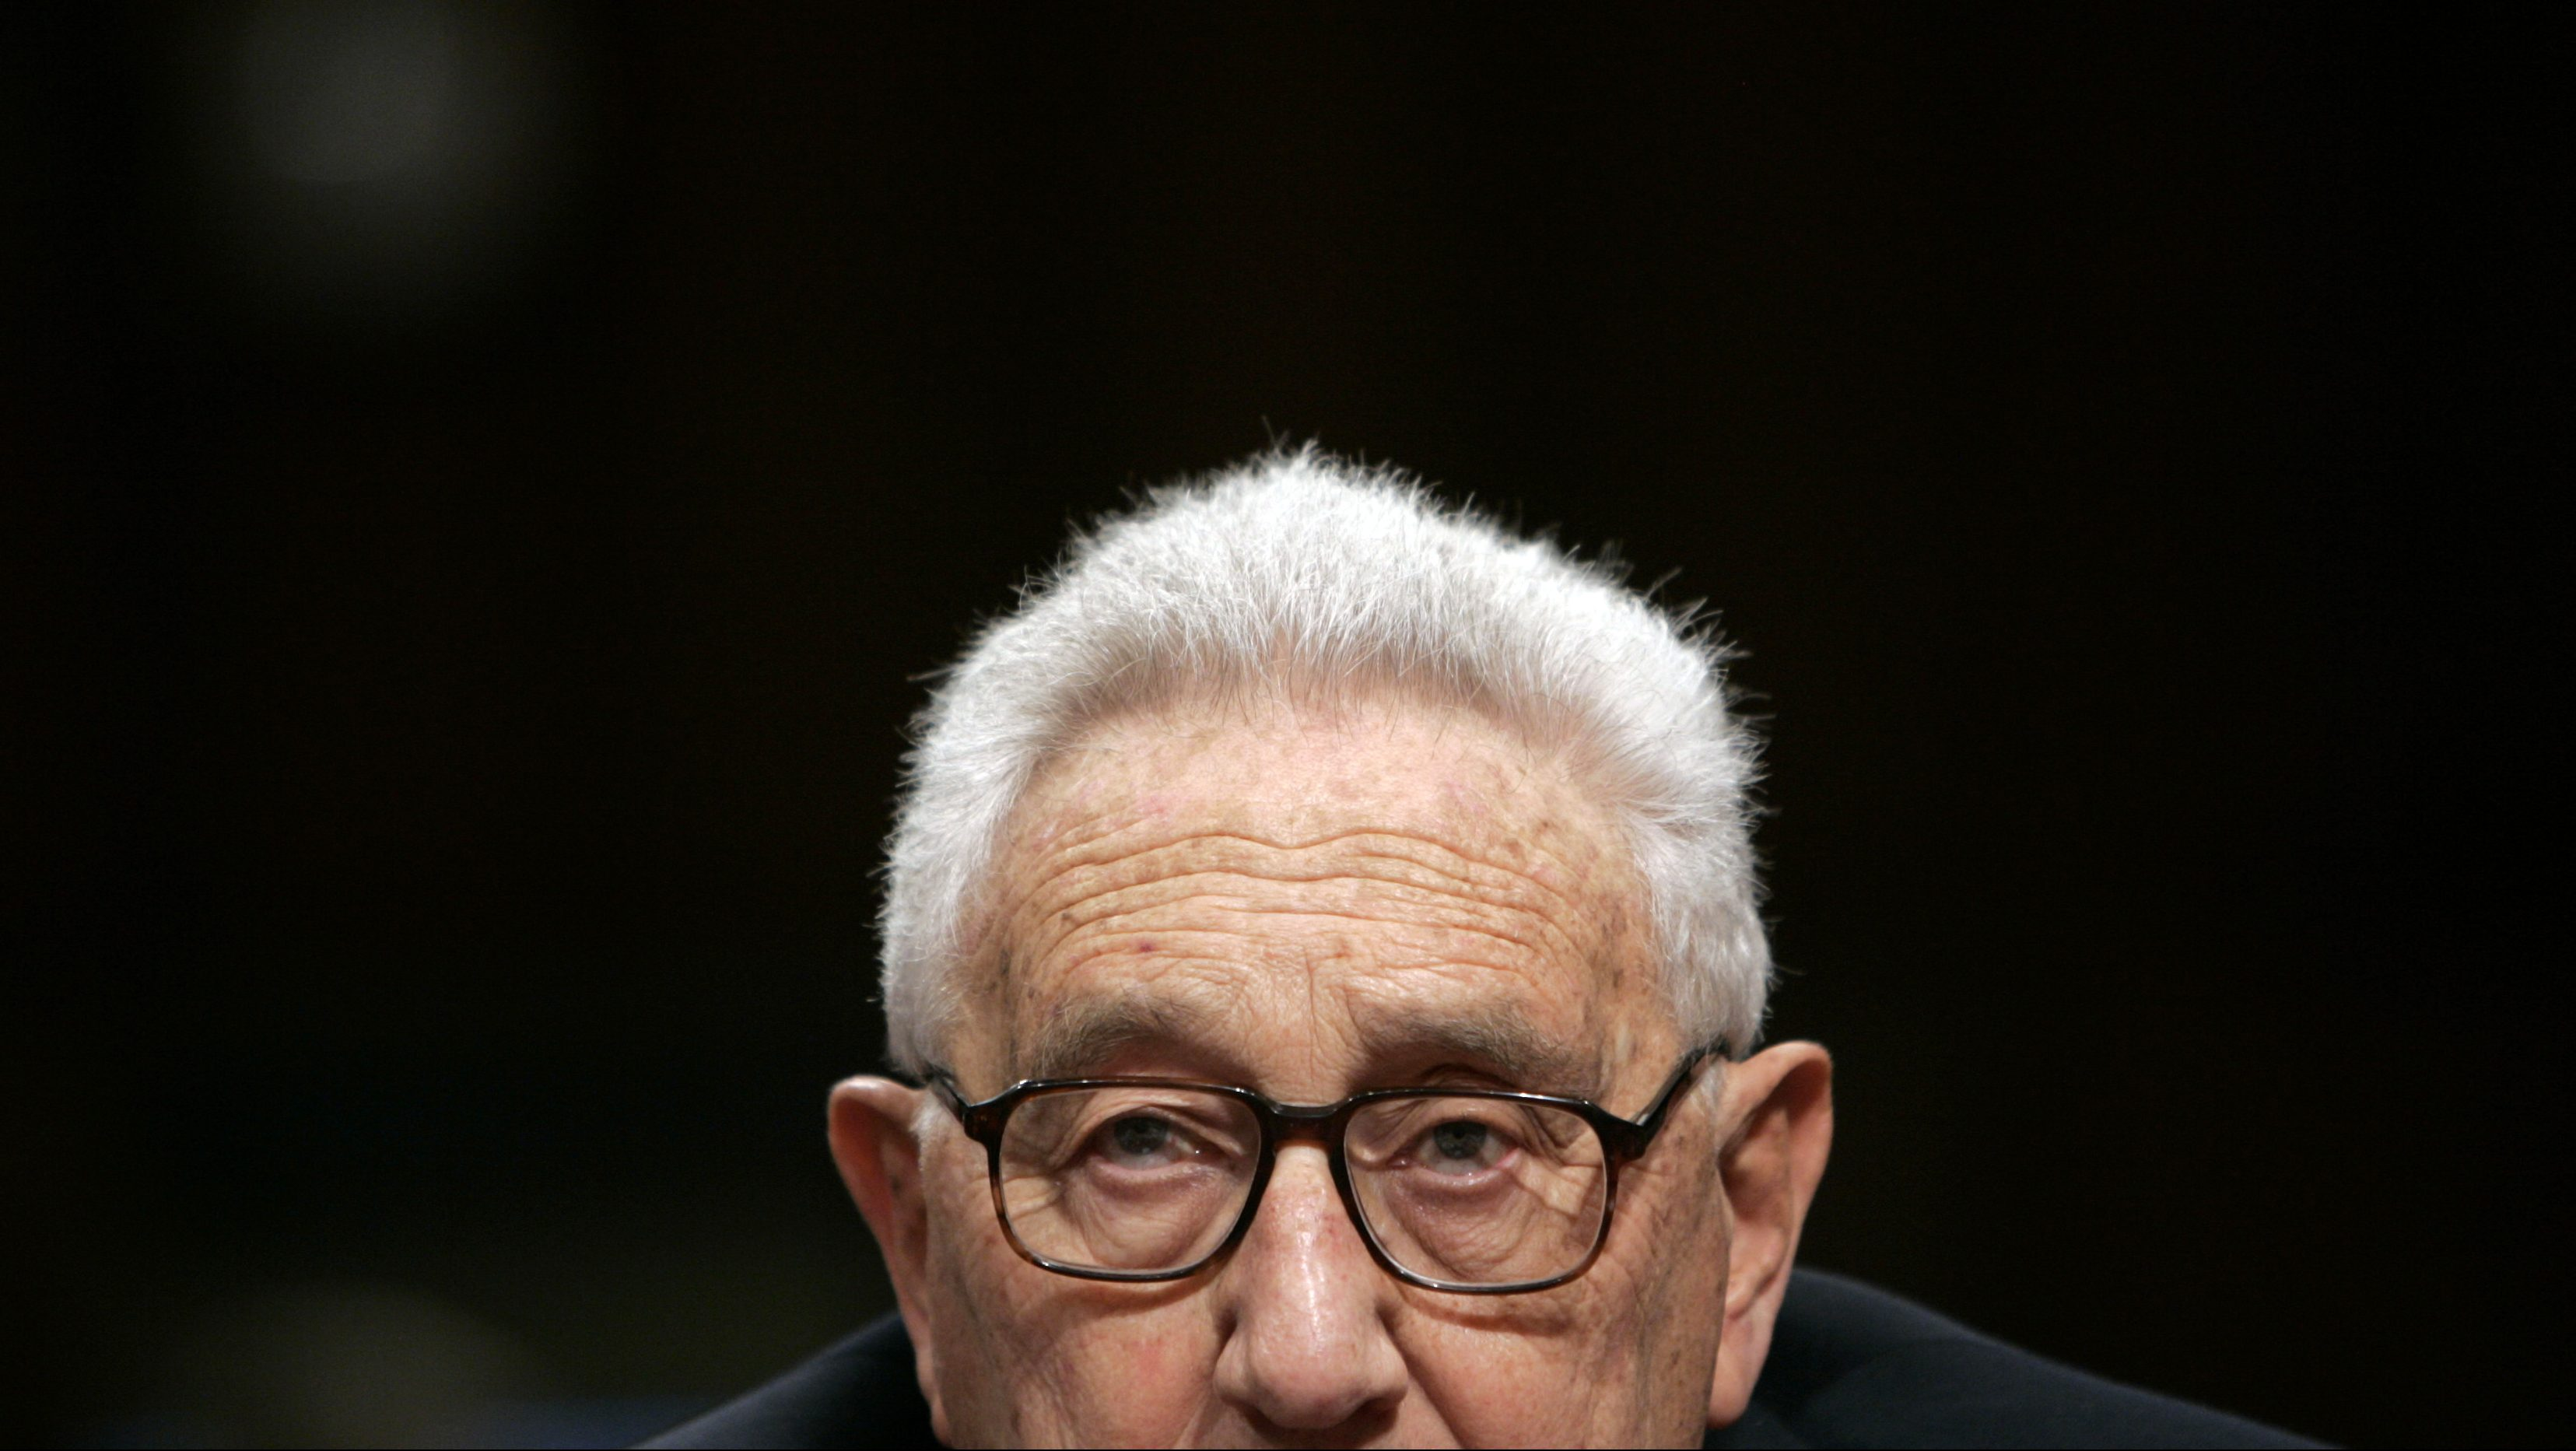 Former U.S. Secretary of State Henry Kissinger listens to questions during a Senate Foreign Relations Committee hearing on Capitol Hill in Washington, January 31, 2007.   REUTERS/Jim Young    (UNITED STATES) - RTR1LU5M